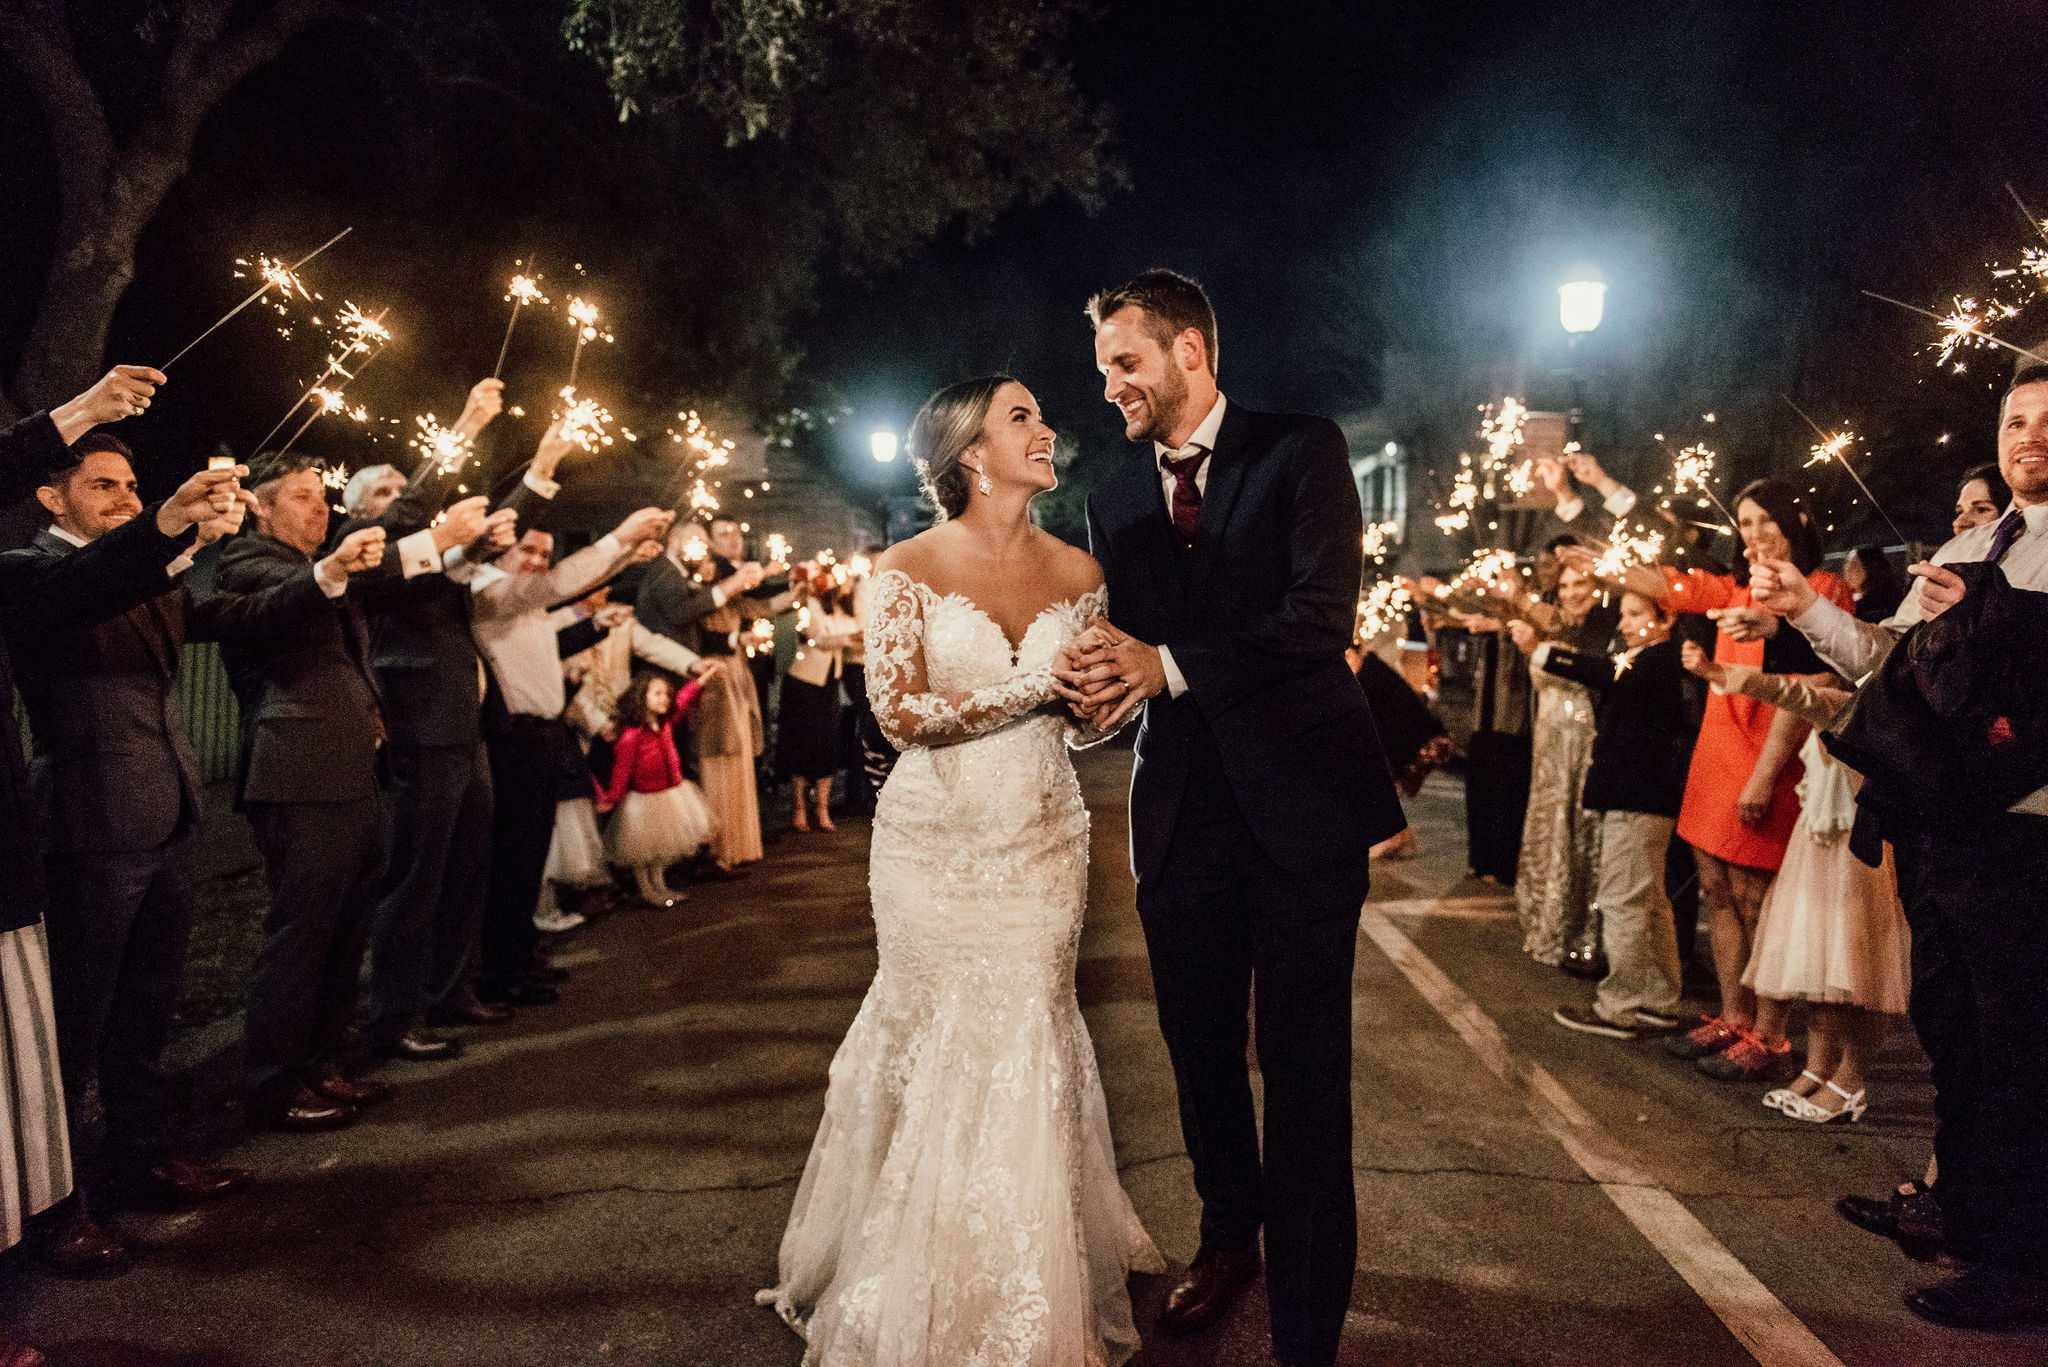 pensacola florida wedding sparkler send off.jpg